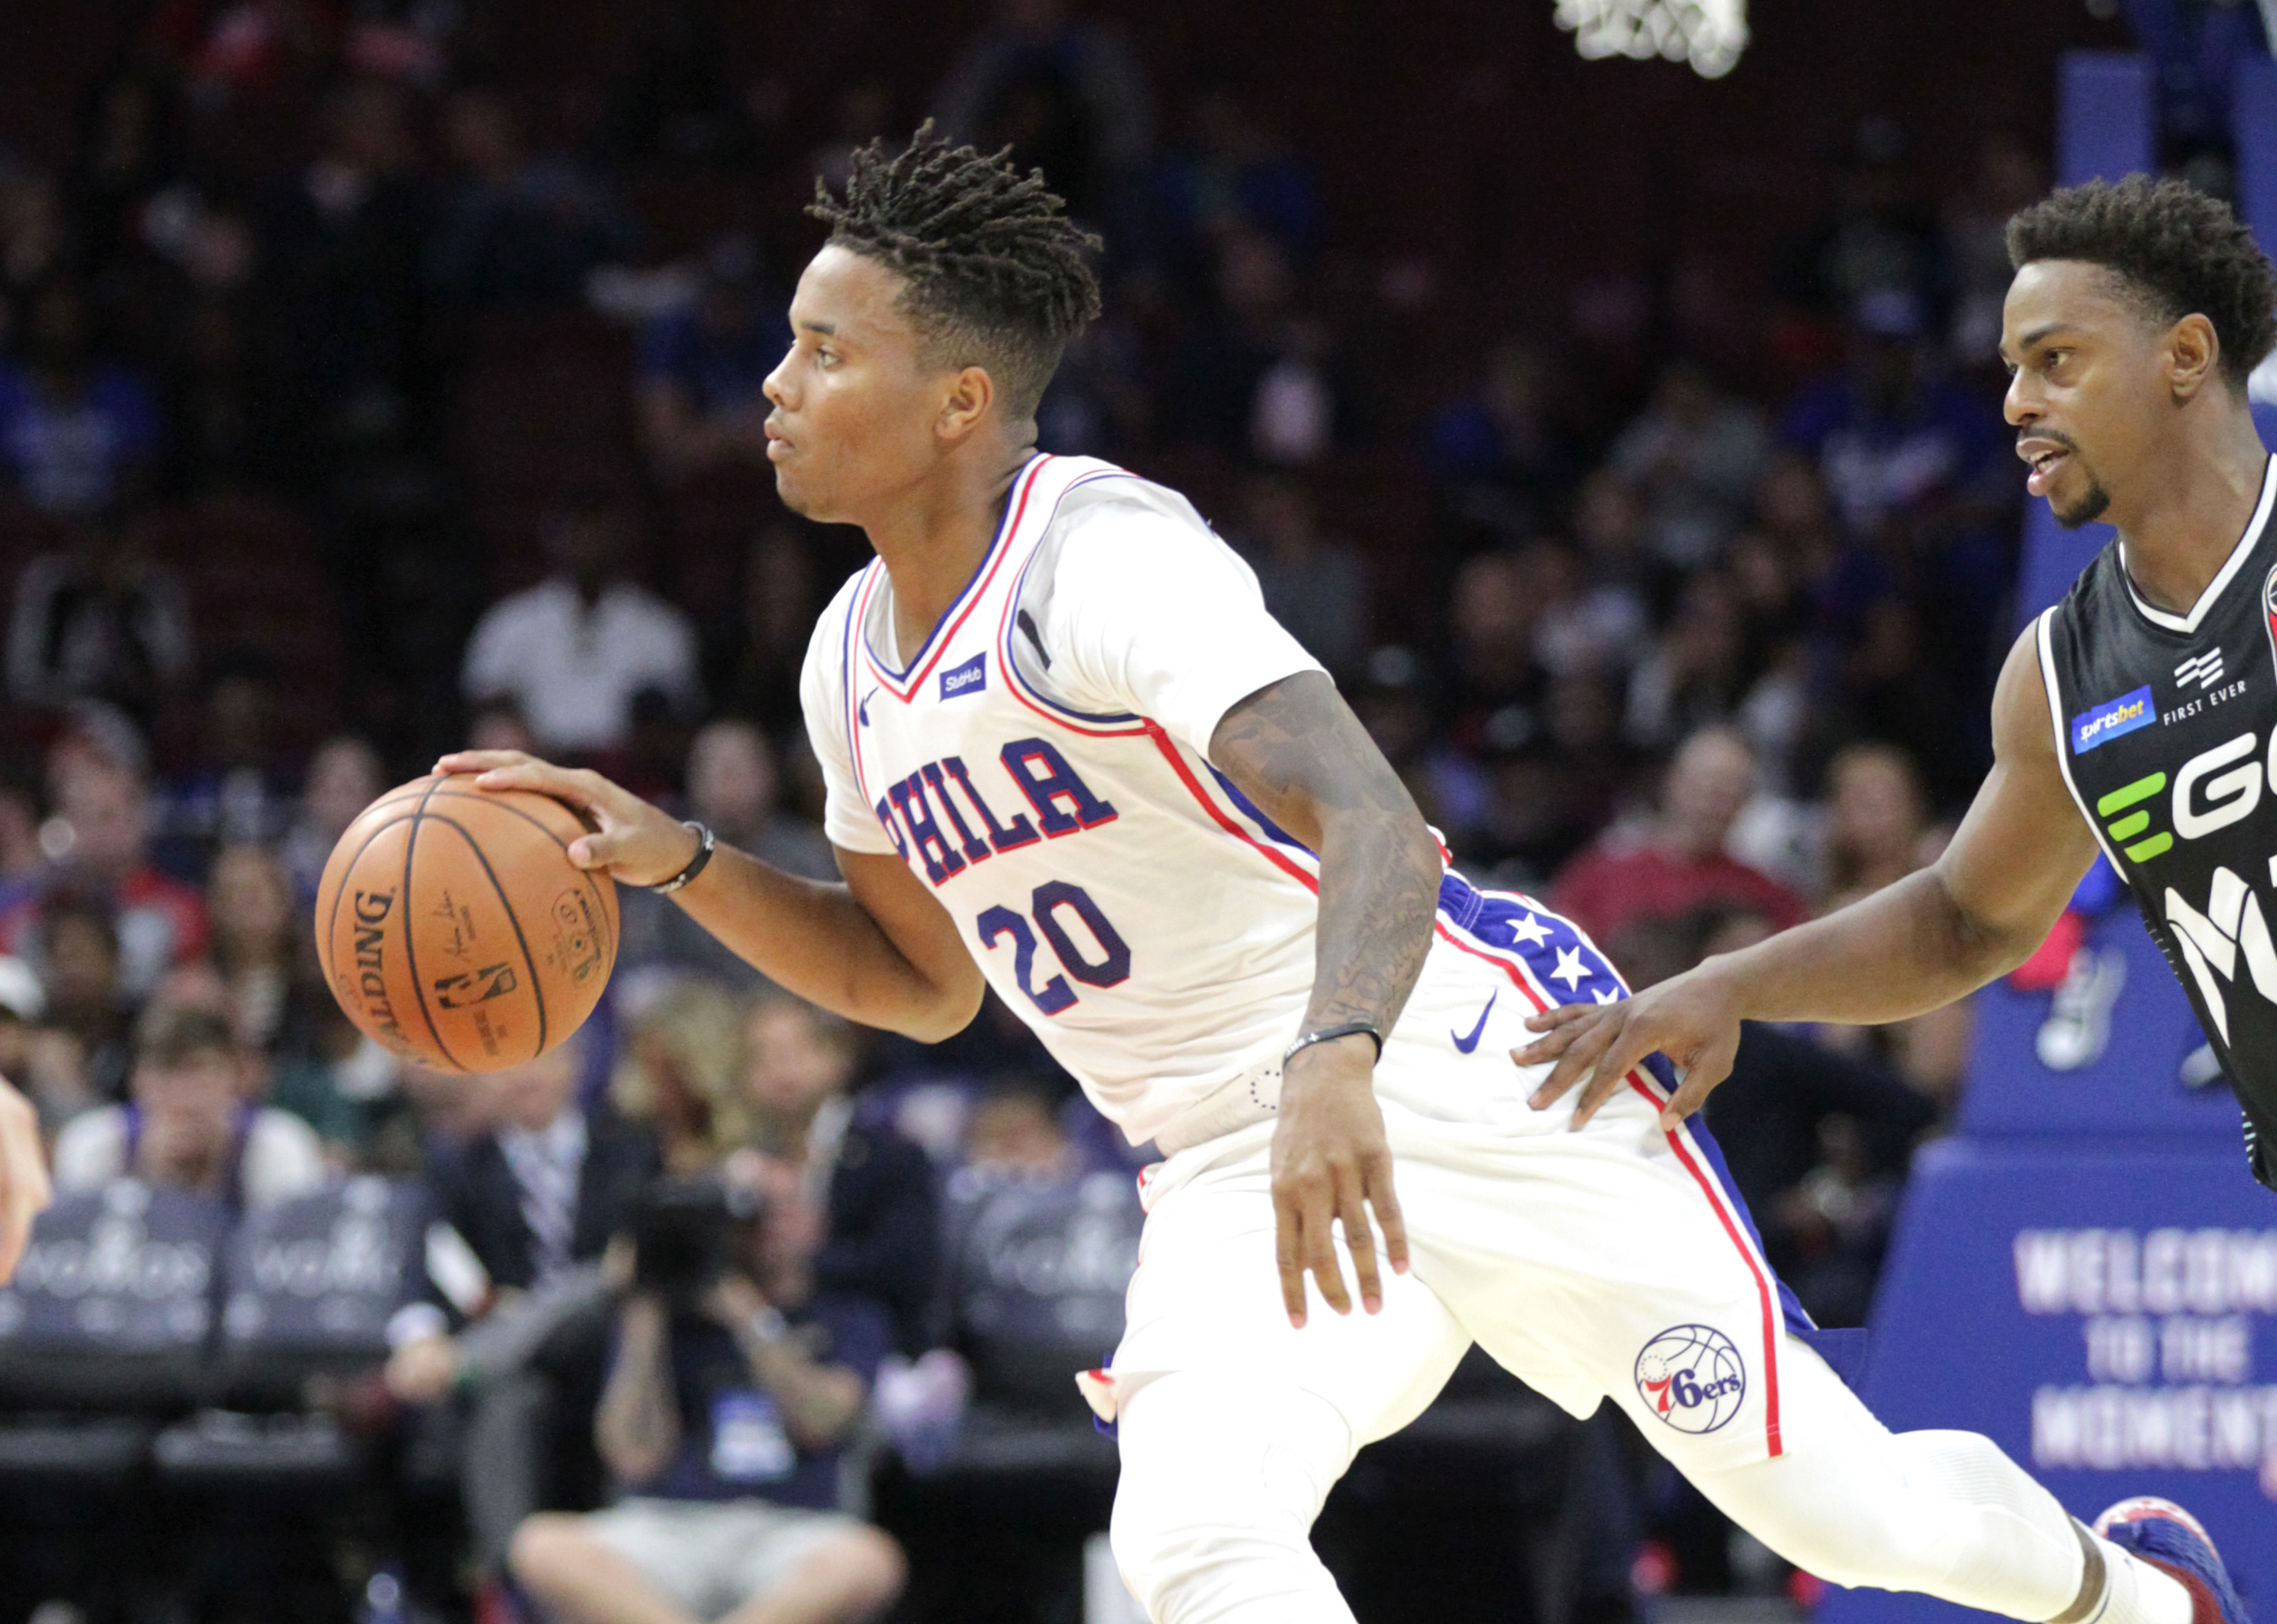 Markelle Fultz, left, will start for the Sixers in the season opener.